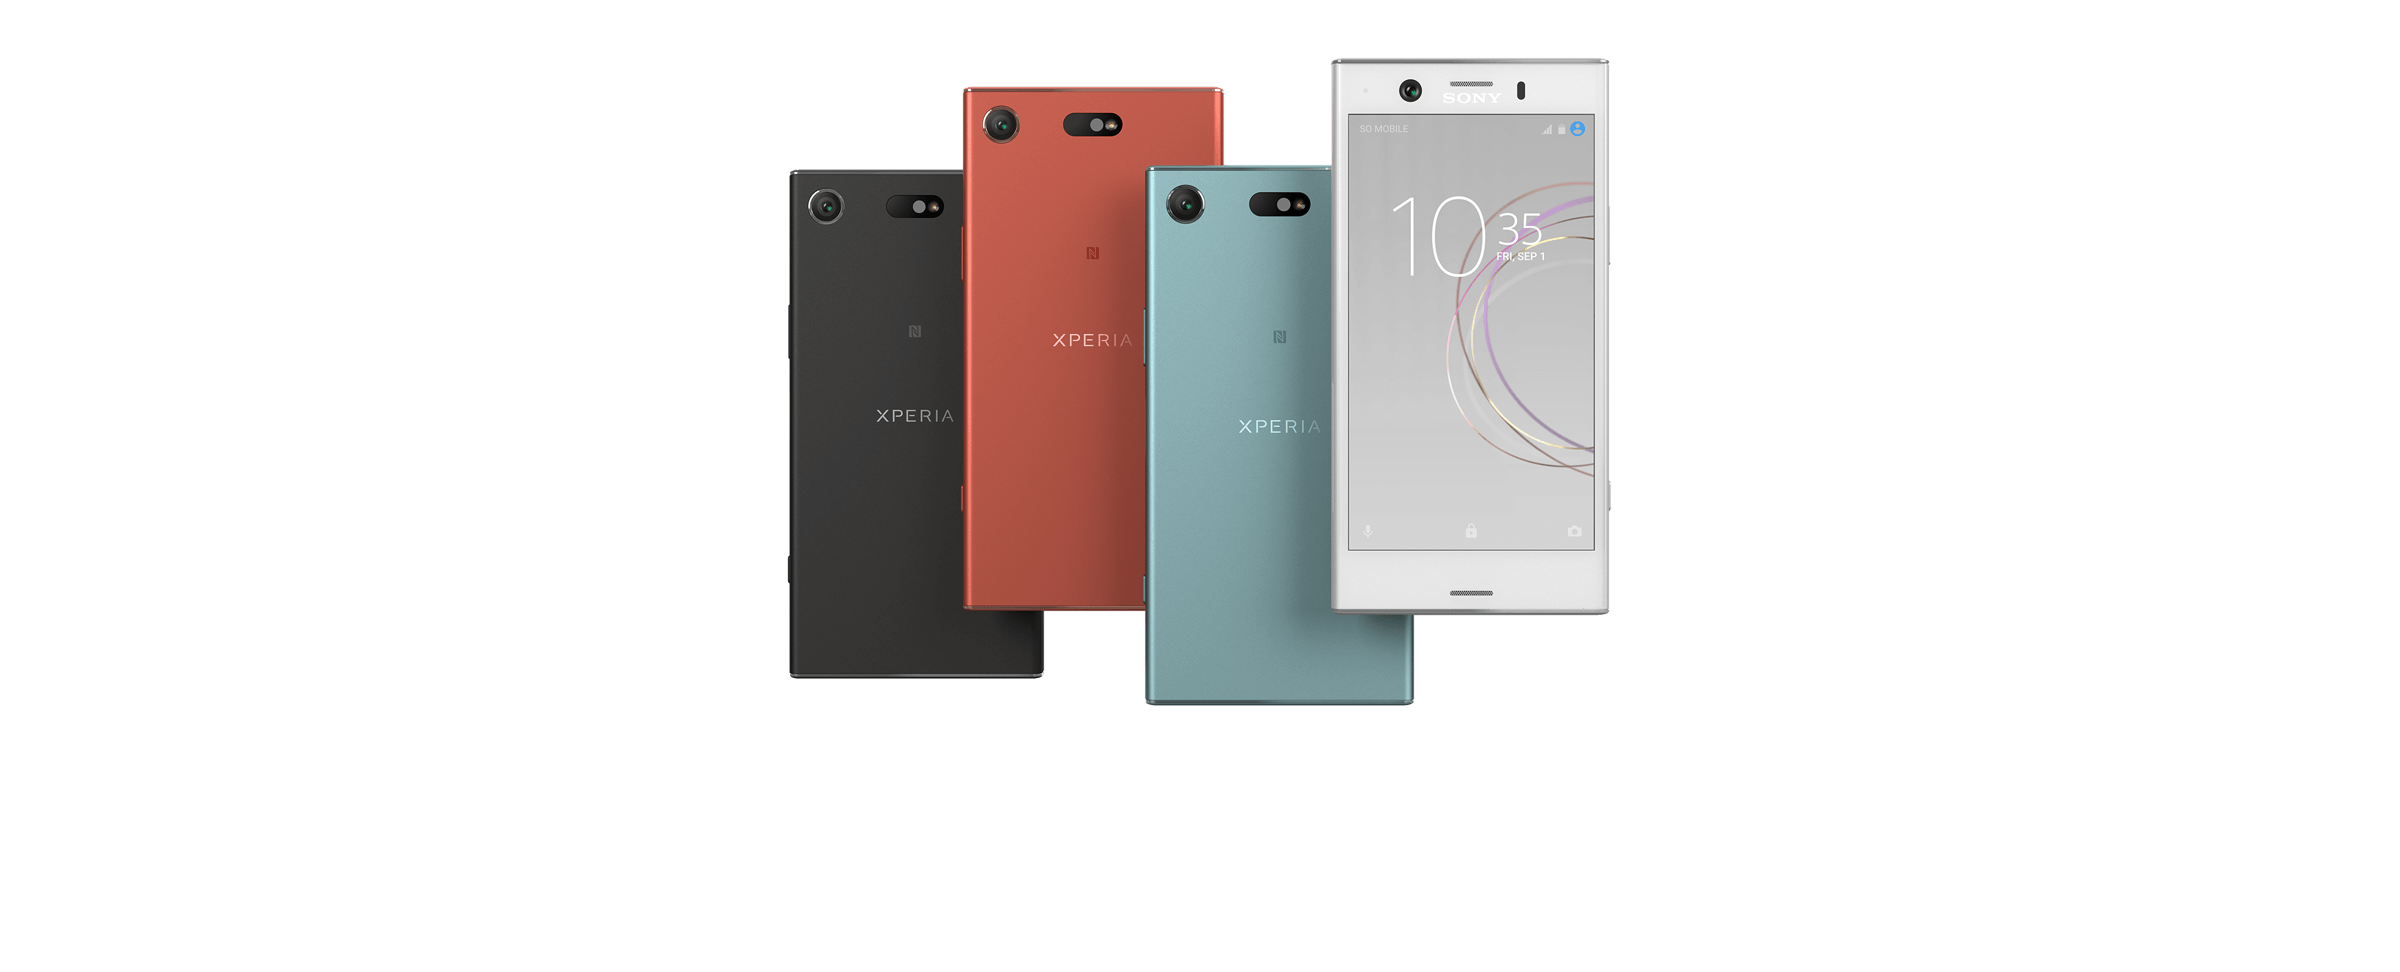 SONY Xperia XZ1 front and back